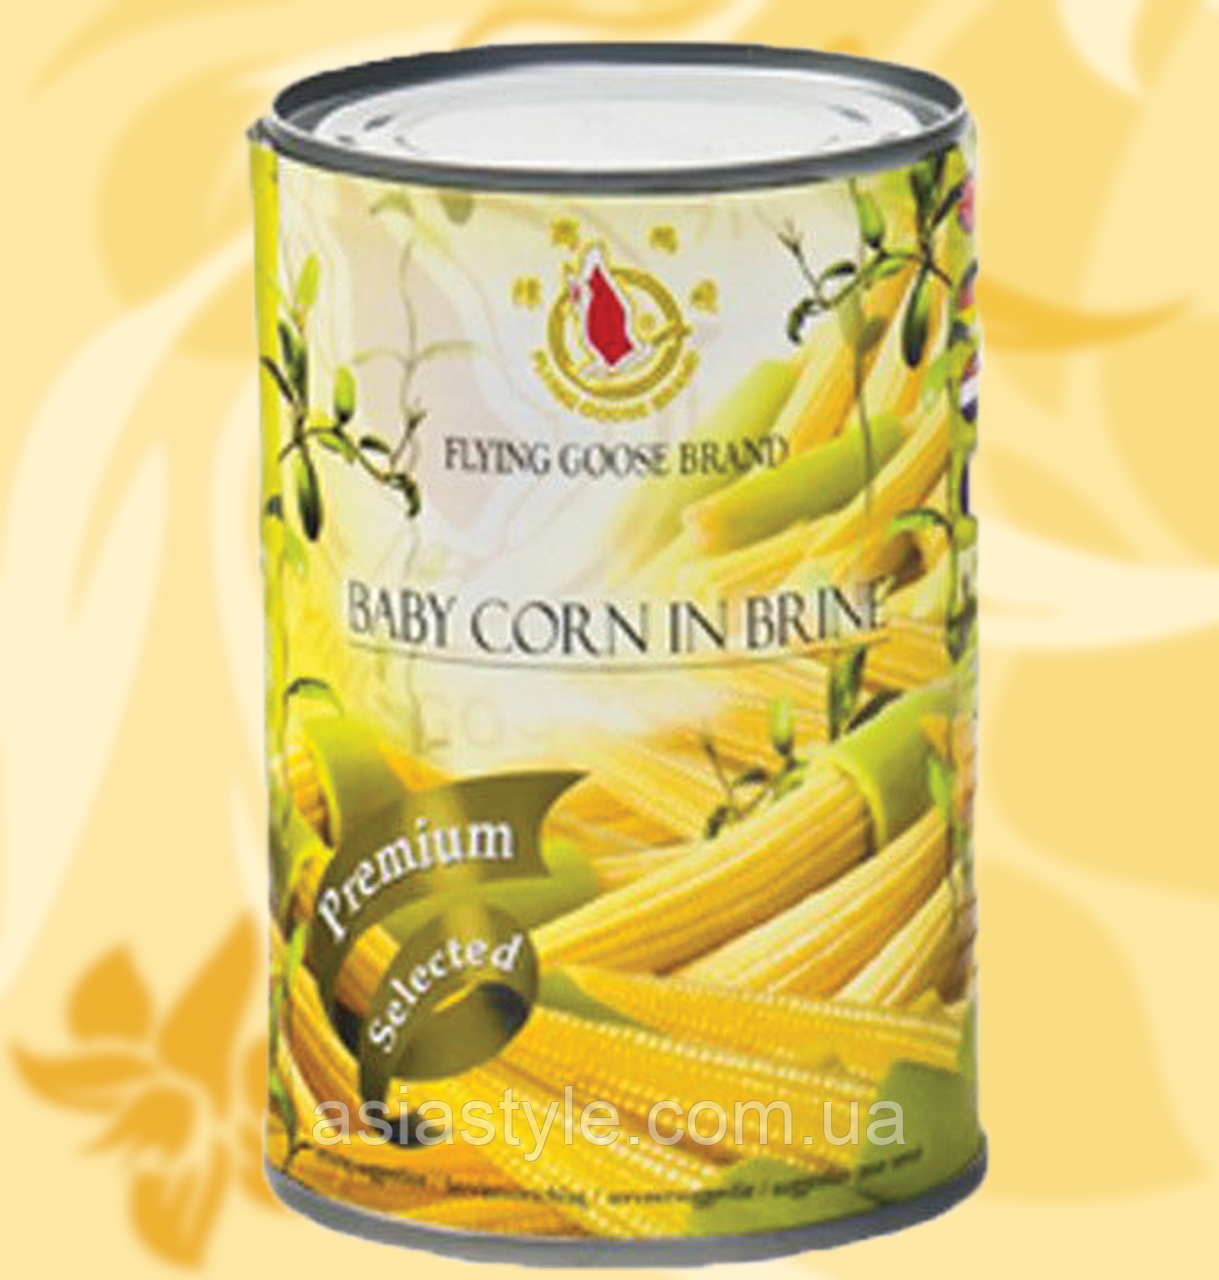 Бебі кукурузка,Baby Corn, Flying Goose Brand, 425г